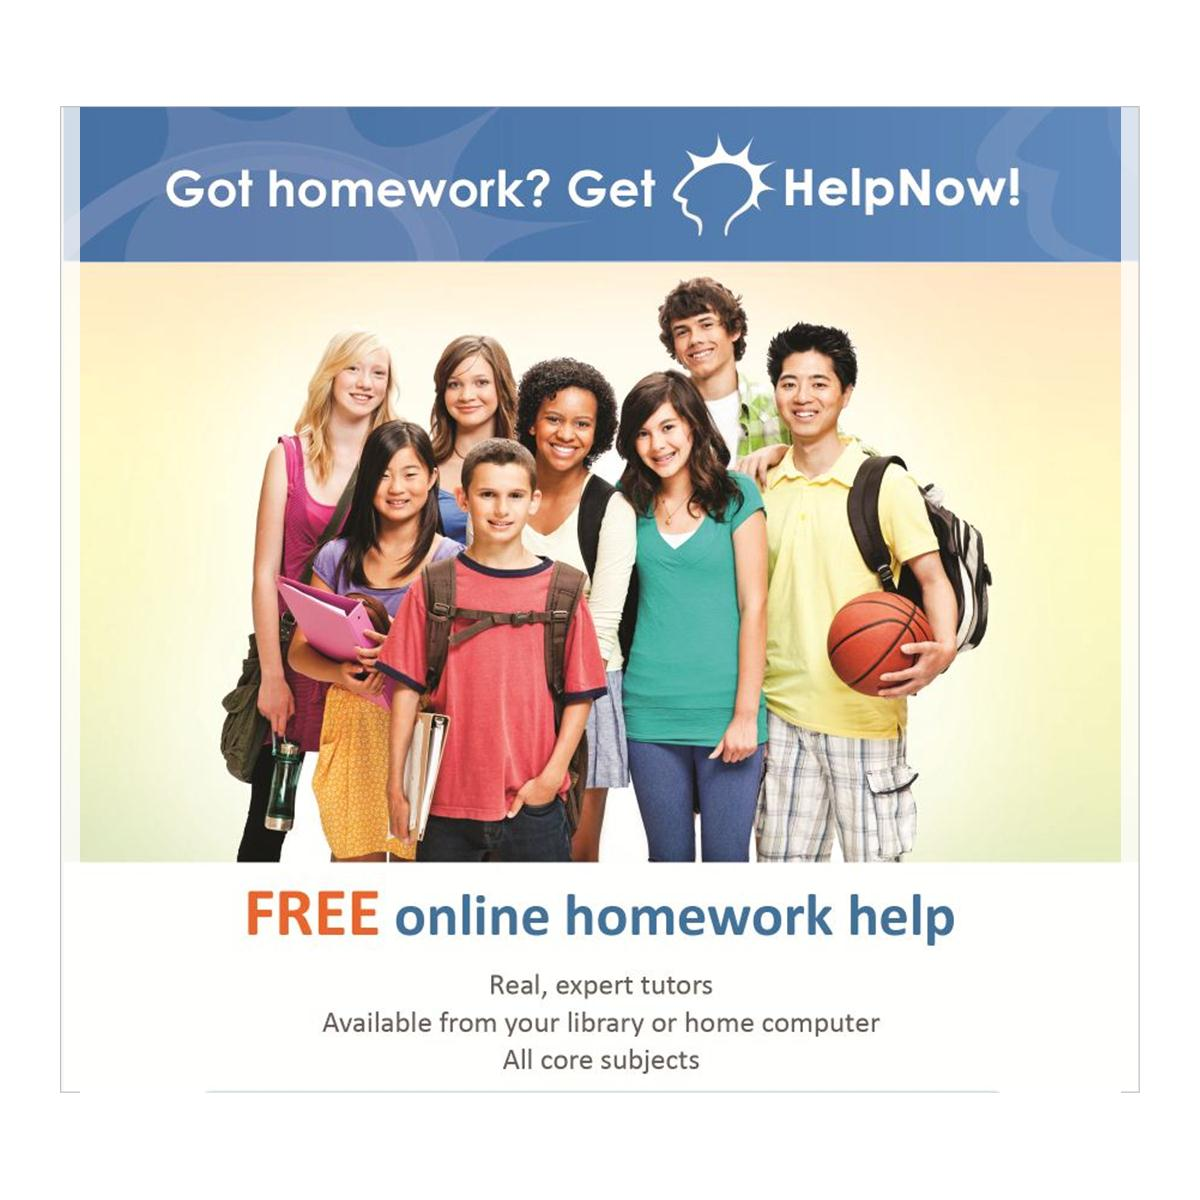 homework help now Find helpful math lessons, games, calculators, and more get math help in algebra, geometry, trig, calculus, or something else plus sports, money, and weather math.